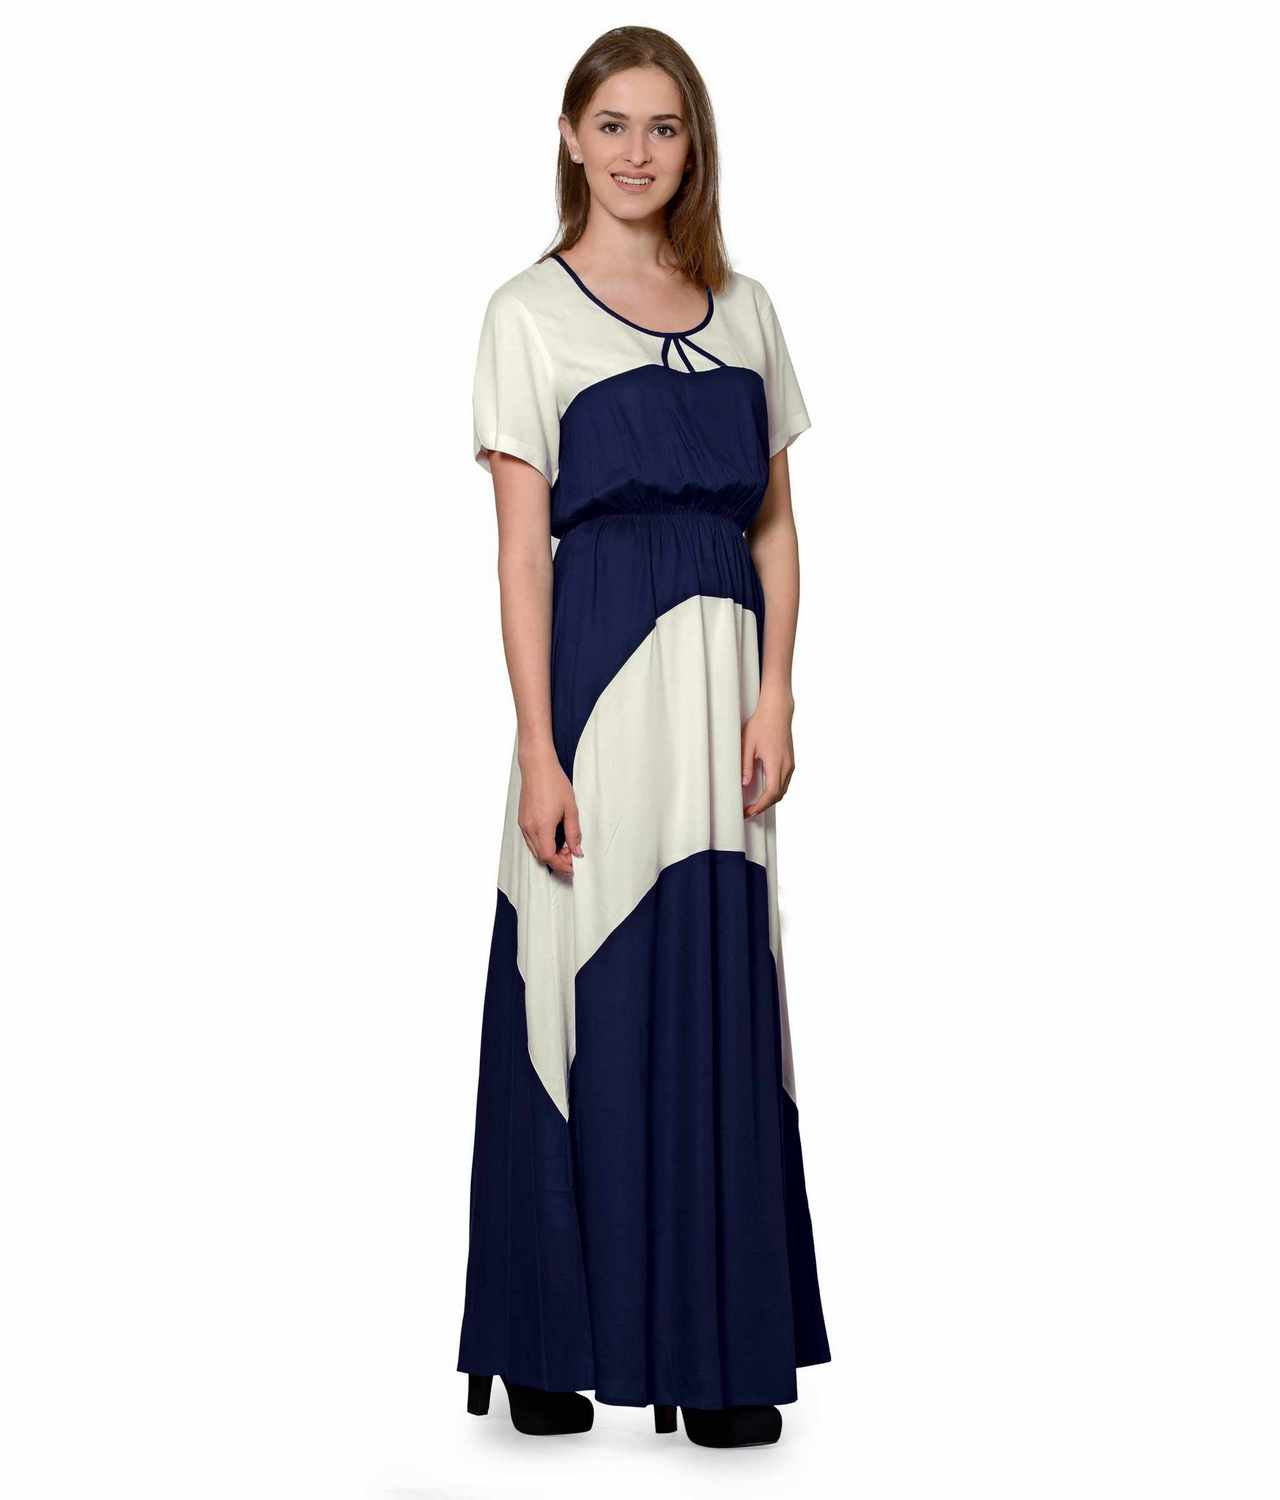 Color Block Slim Fit Maxi Dress Gown in Off-White:Dark Blue